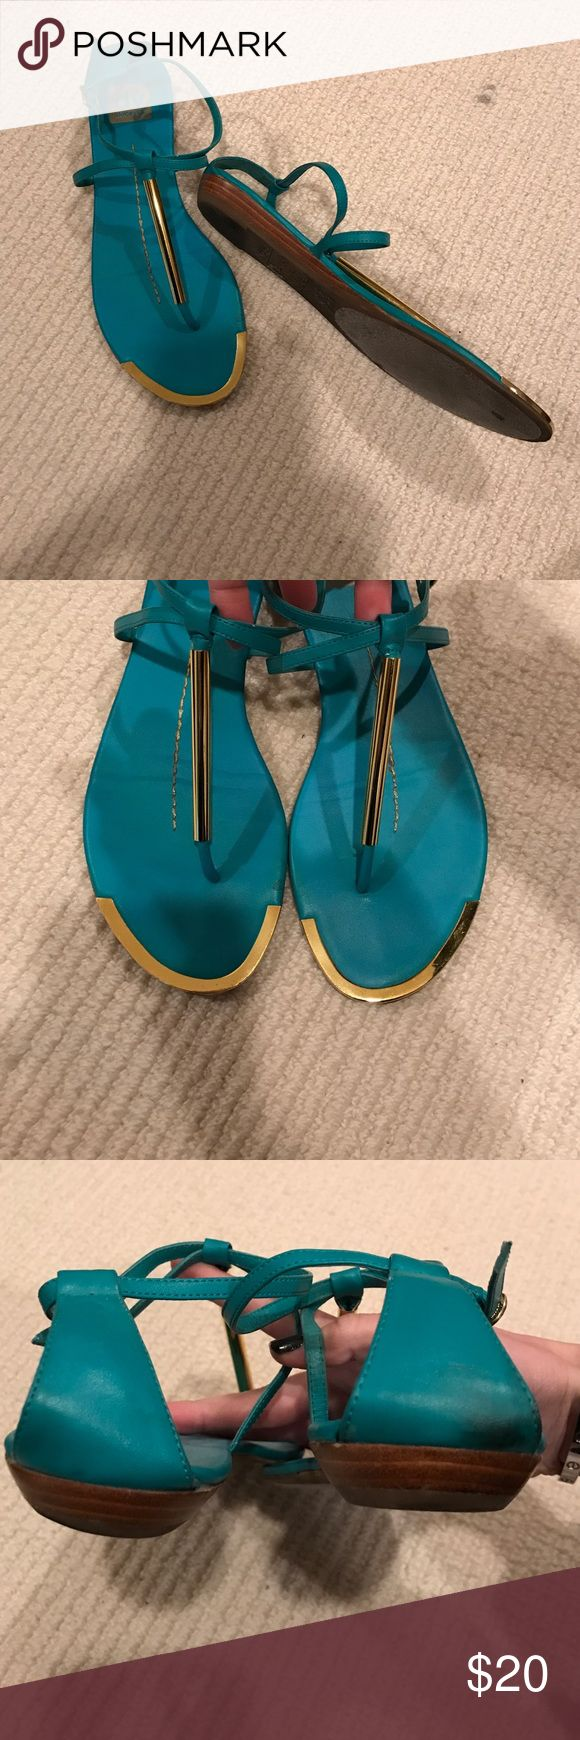 DV Dolce Vita turquoise sandals. Turquoise flat sandals. Gold hardware of T strap and around toe bed. Chris's cross detail around top of foot and ankle. Rubber soles with a 1/4 inch stacked wedge heal. DV by Dolce Vita Shoes Sandals